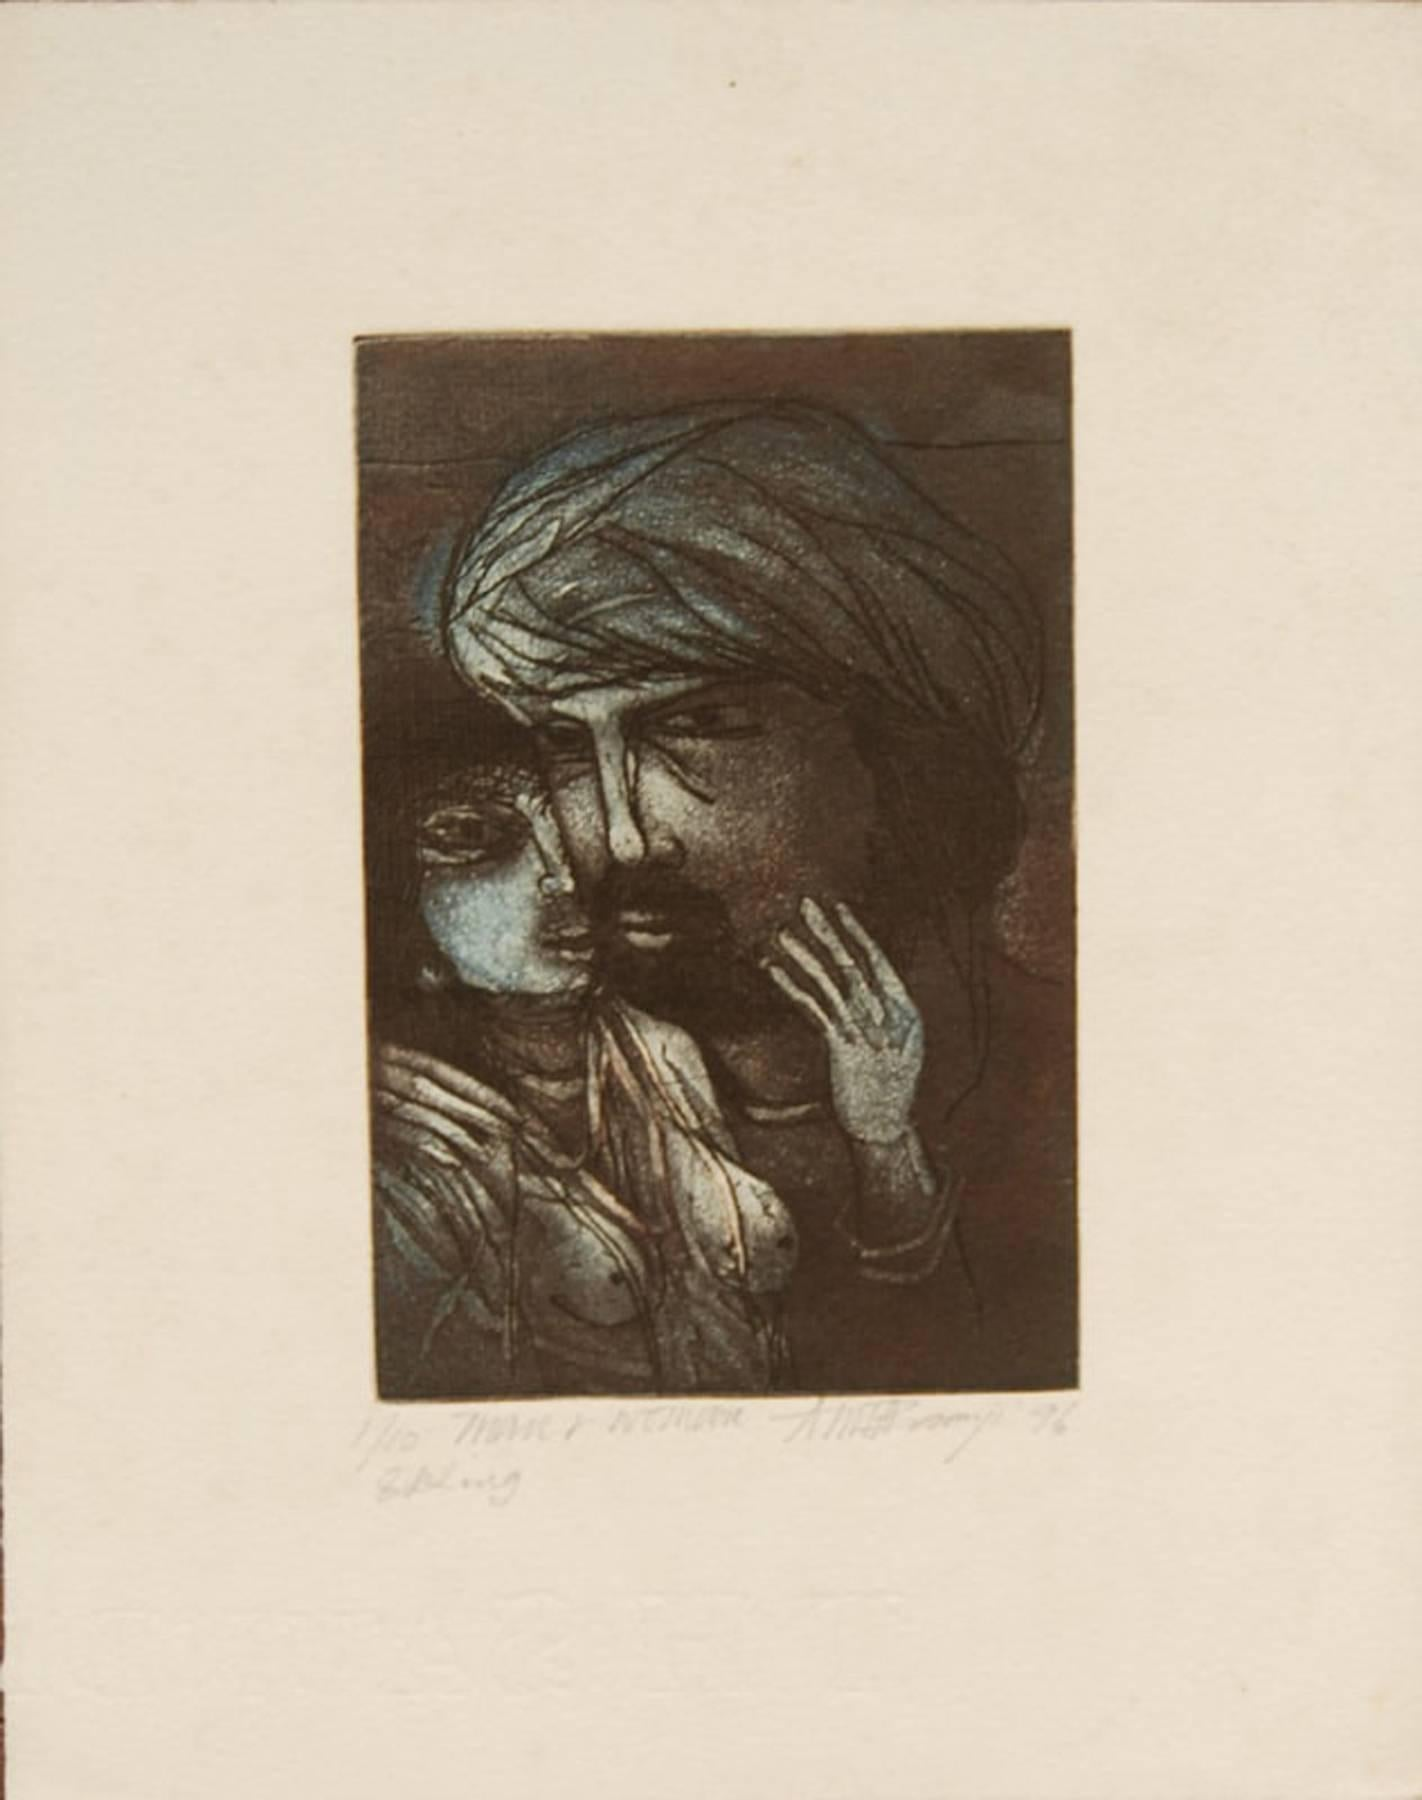 """Man & Woman, Relationship, Etching on paper, Blue, Brown, Black colors""""In Stock"""""""